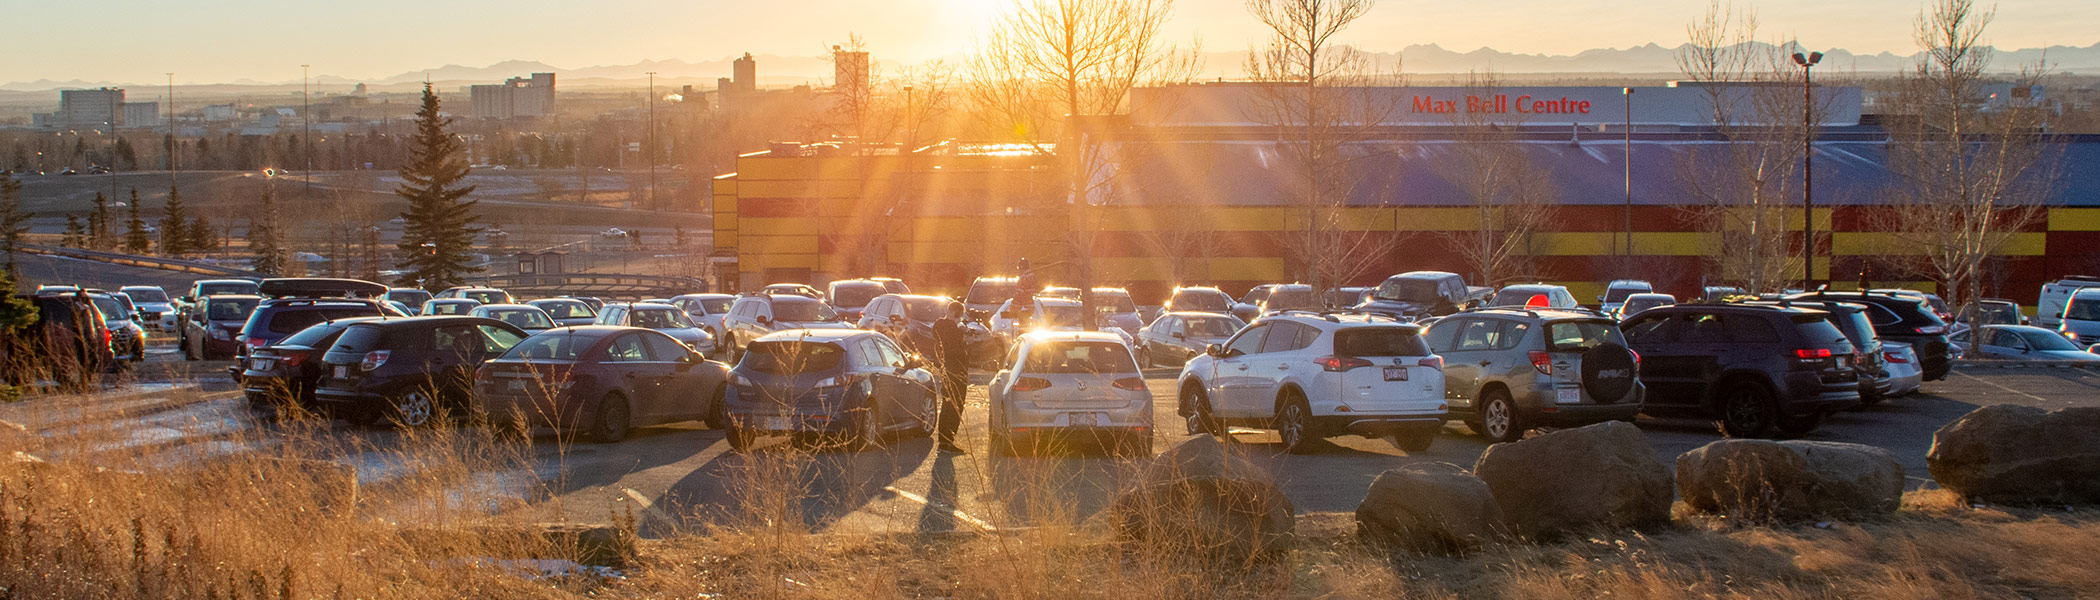 Cars at the Luminous Voices drive-in performance at the Max Bell Centre